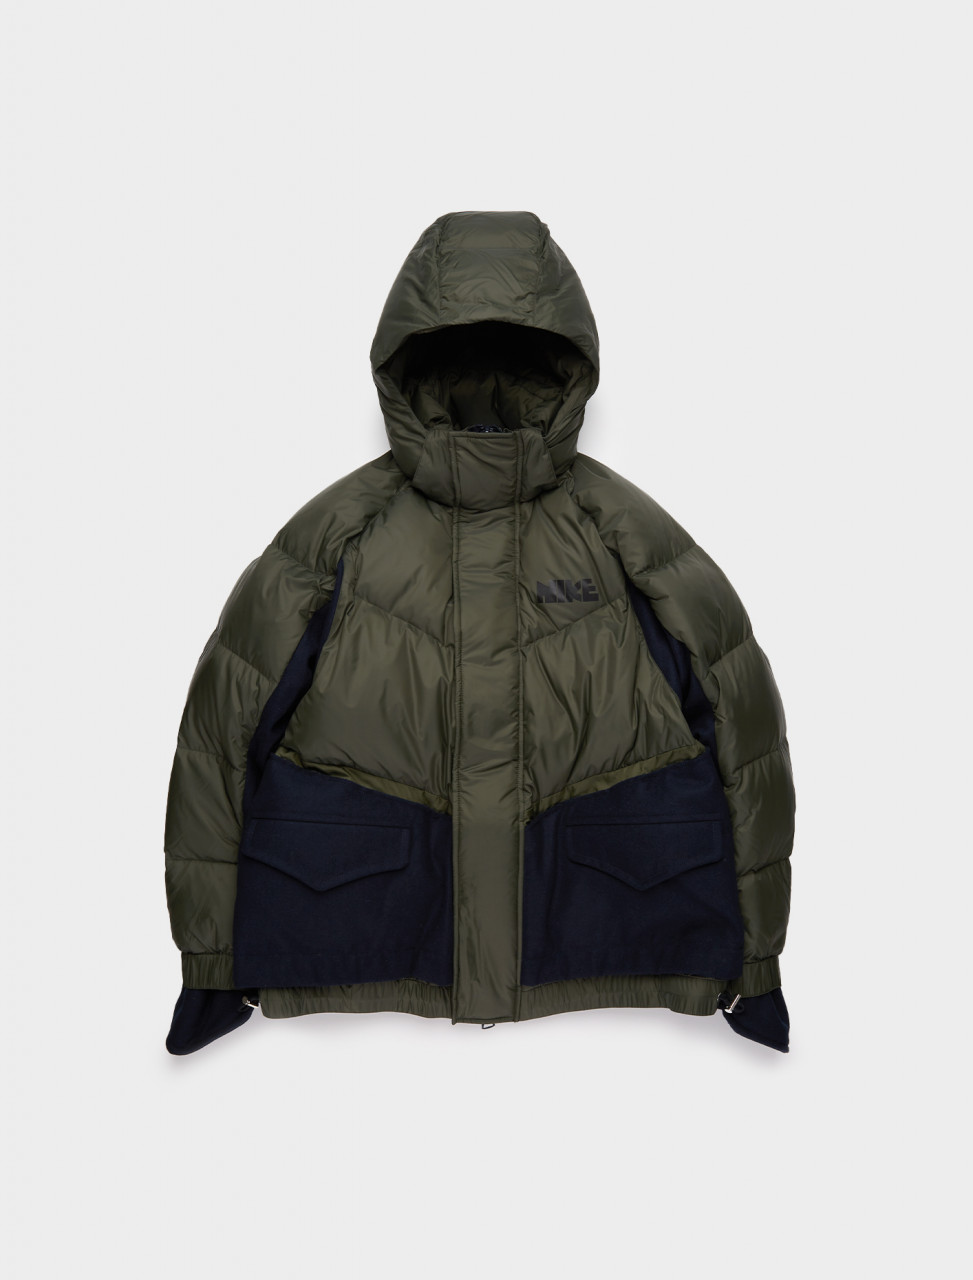 149-CT3269-355 NIKE SACAI PUFFER JACKET SEQUOIA